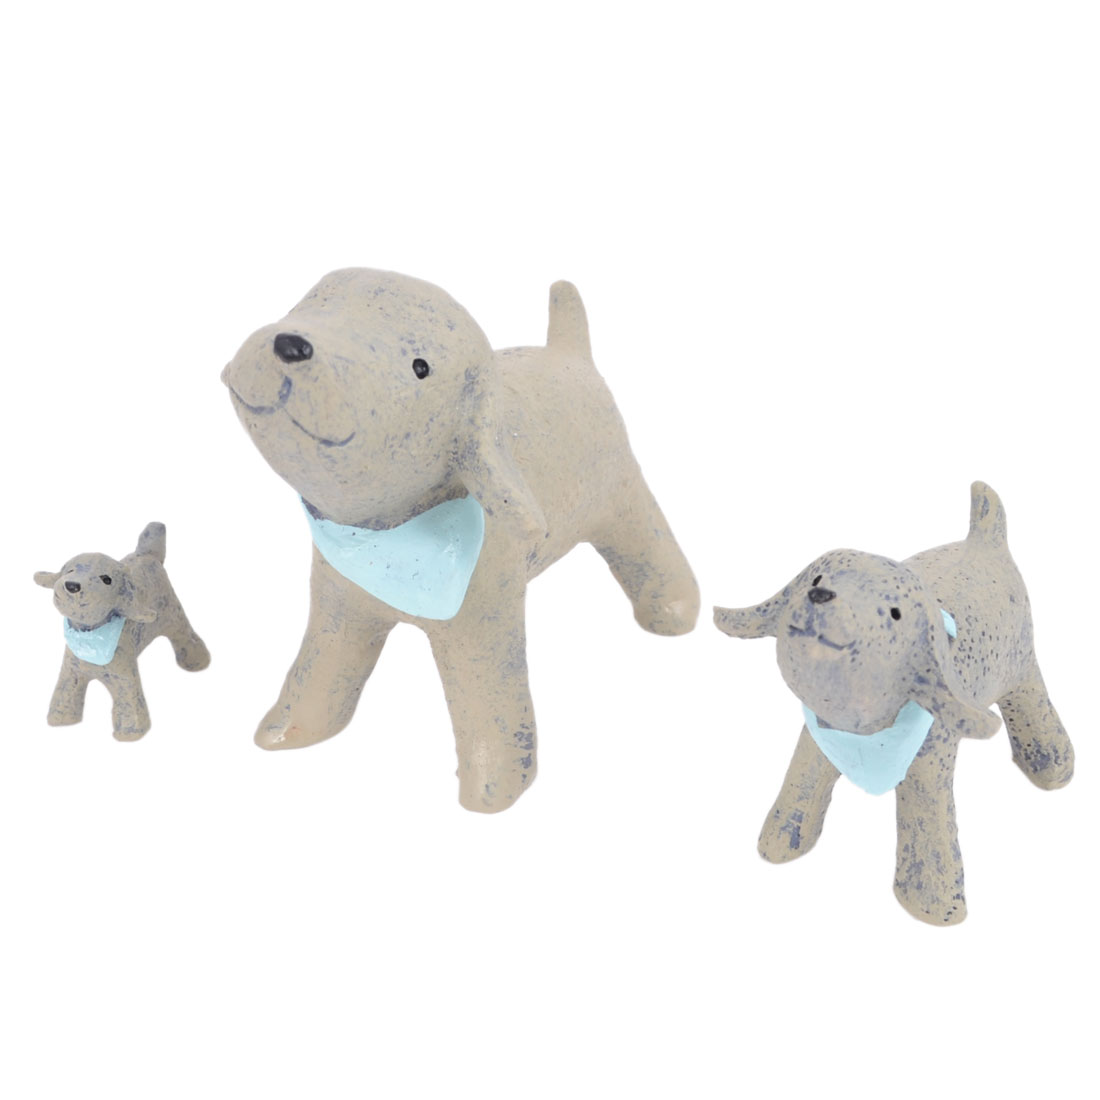 Home Decor Gray Blue Resin Emulational Dress Scaft Dog Handcraft 3 in 1